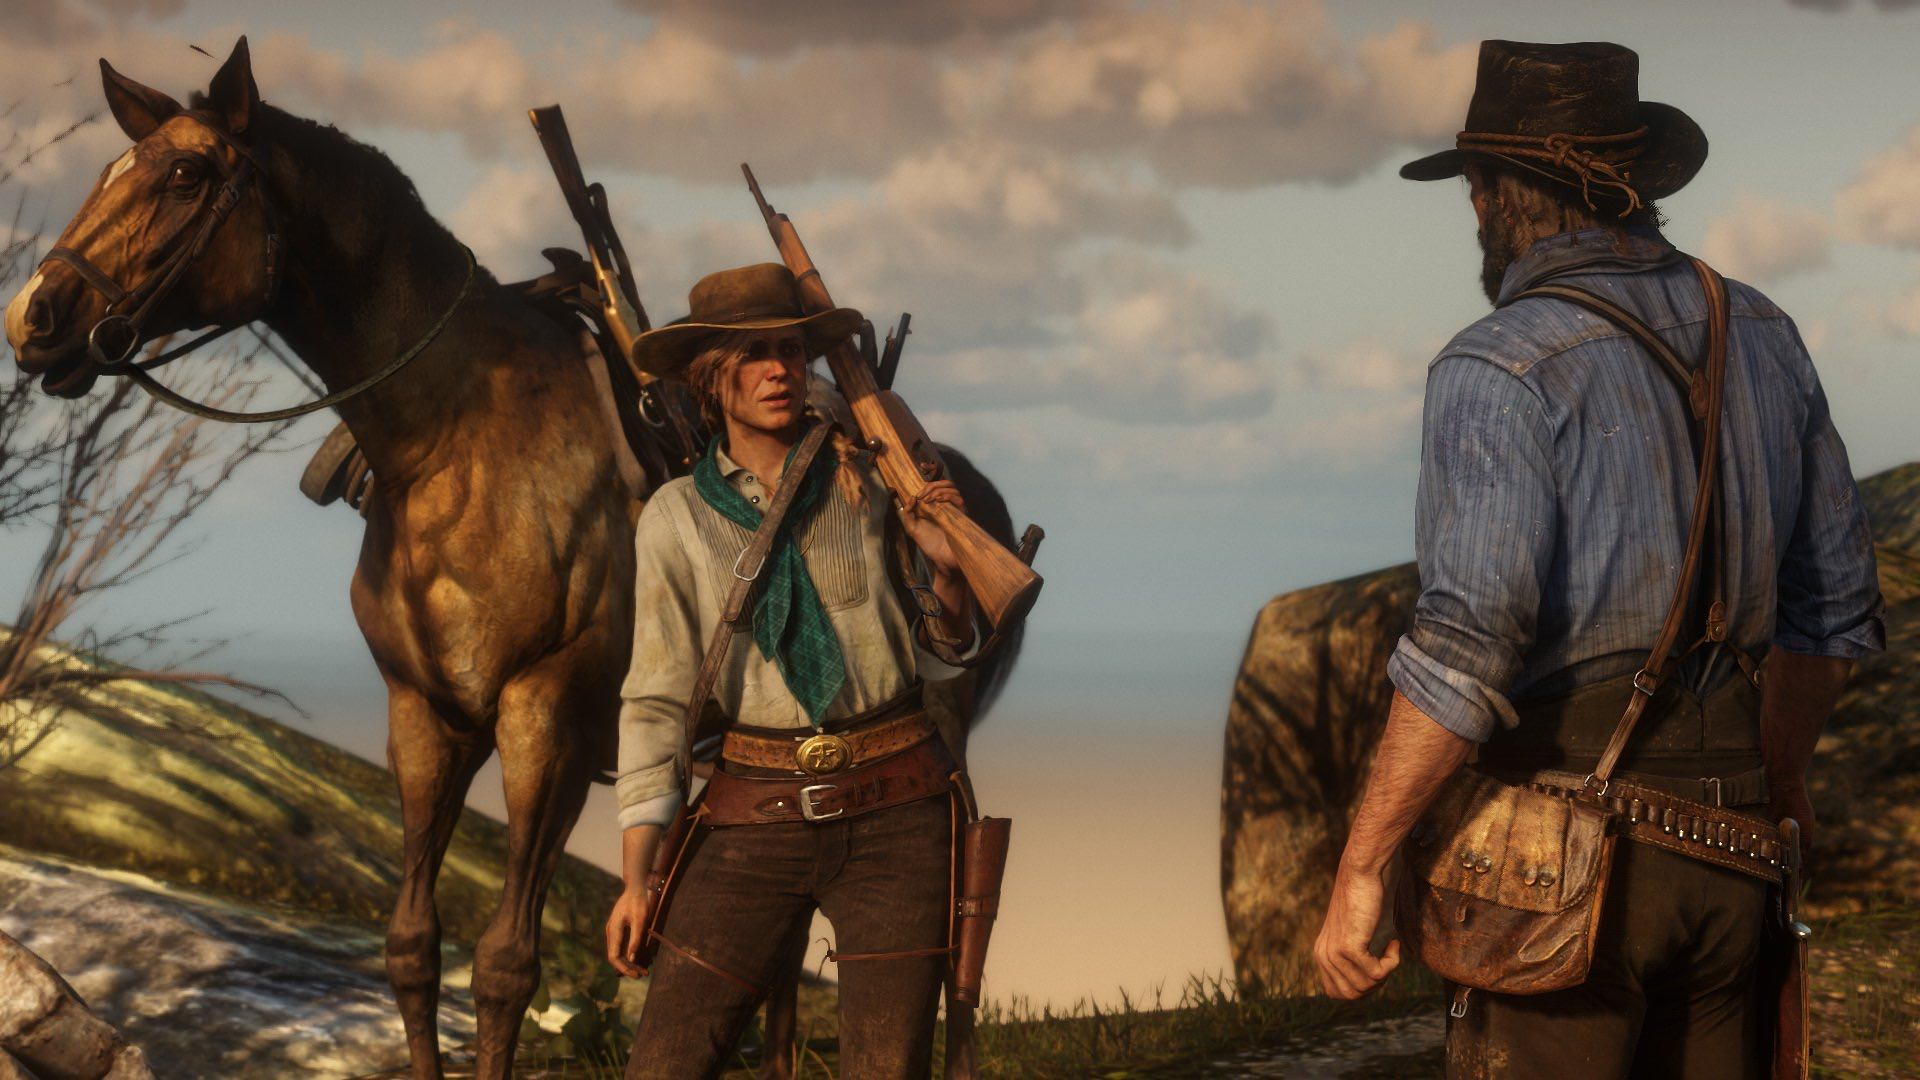 Red Dead Redemption 2 announced the seven map locations, including Valentine